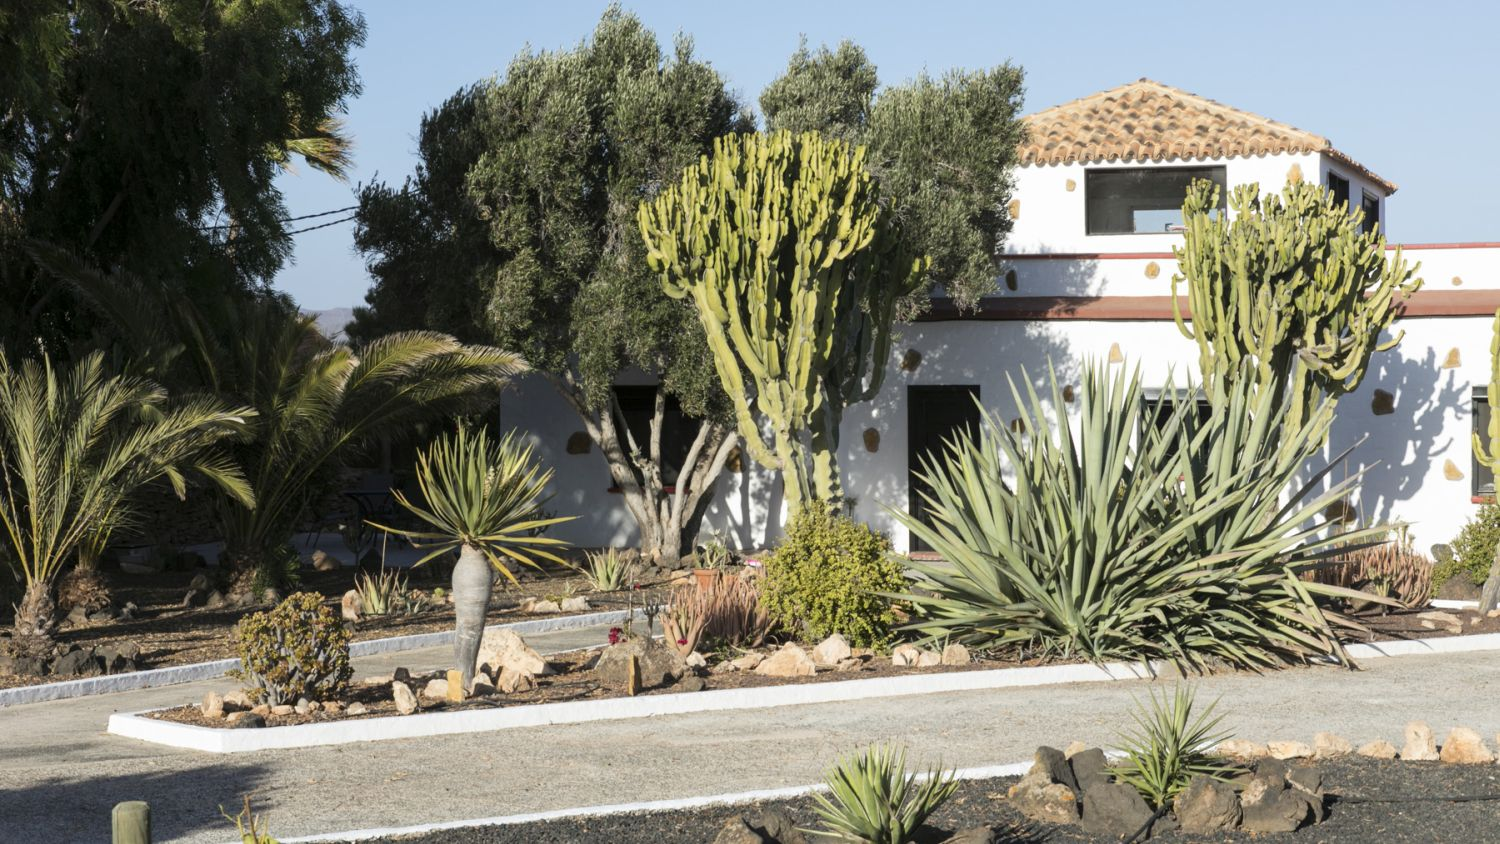 Grote tuin met vele cactussen / Large garden with many cacti